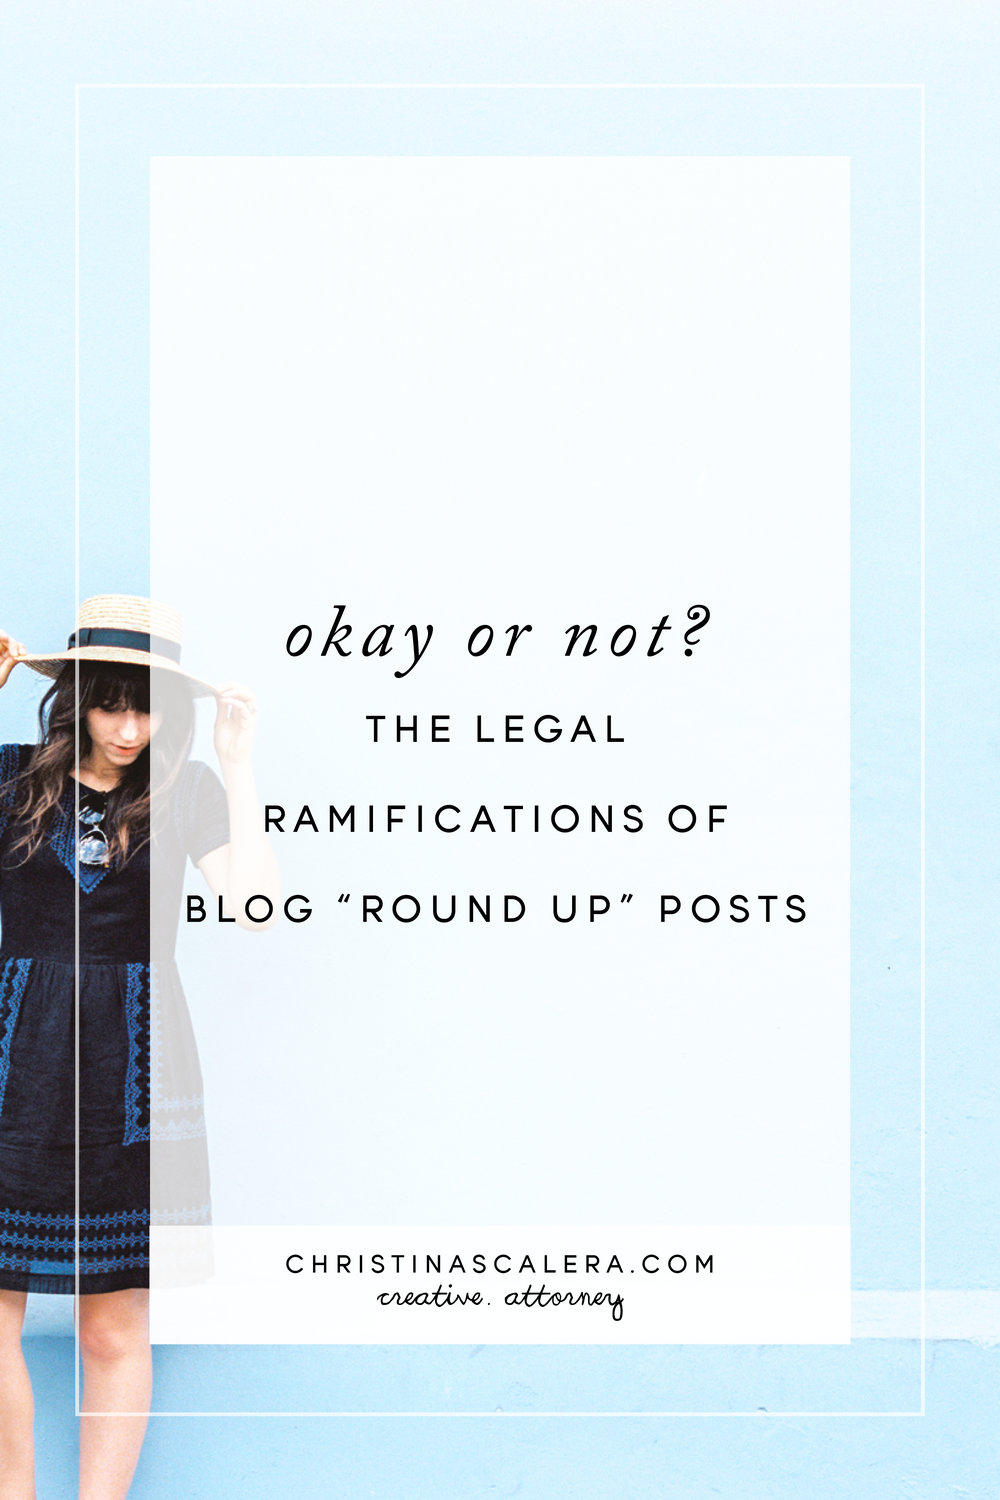 "Okay or not? The legal ramifications of blog ""round up"" posts."